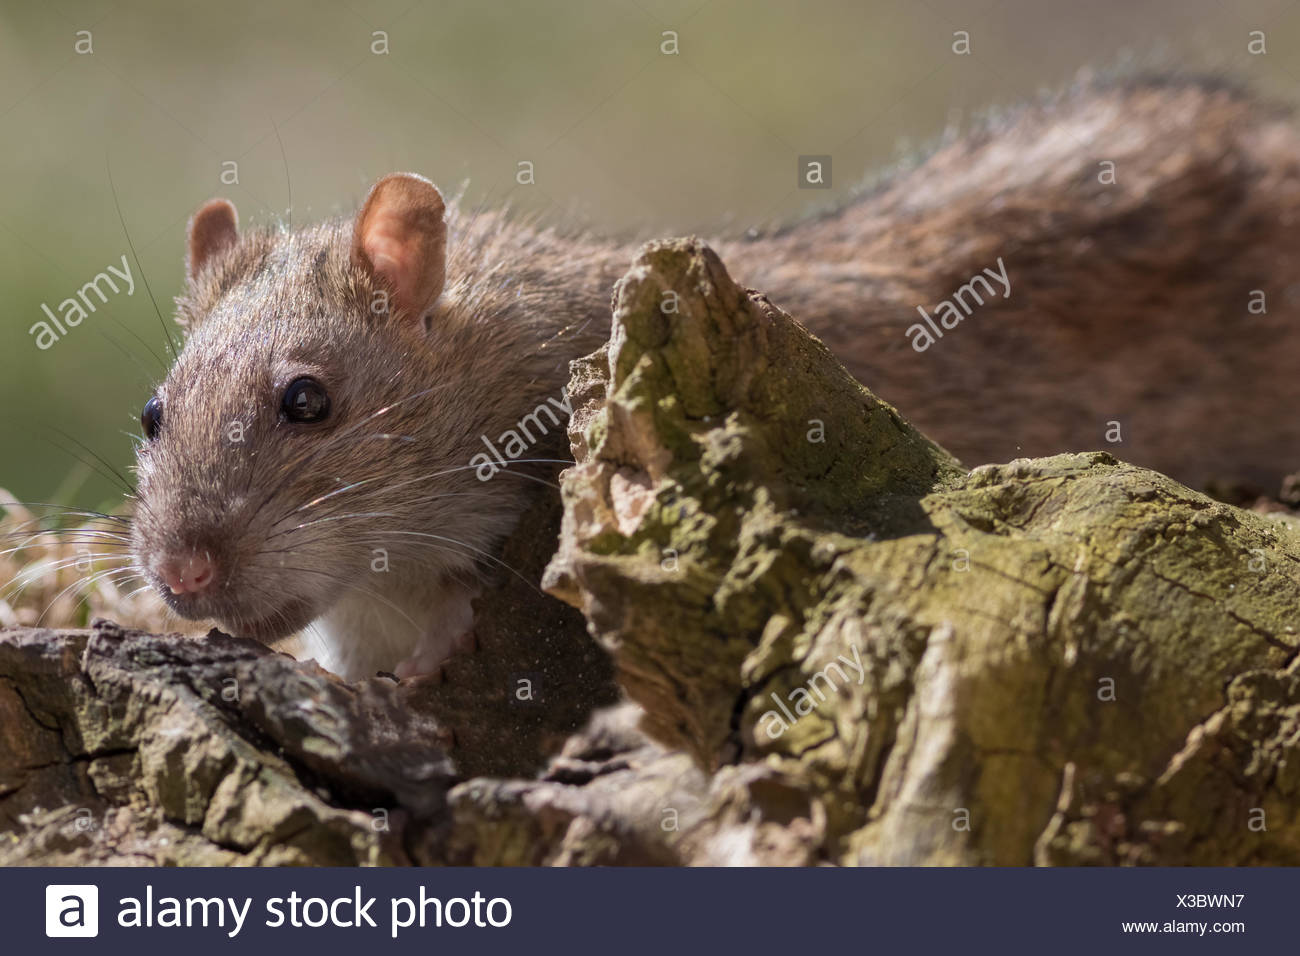 Rat foraging - Stock Image